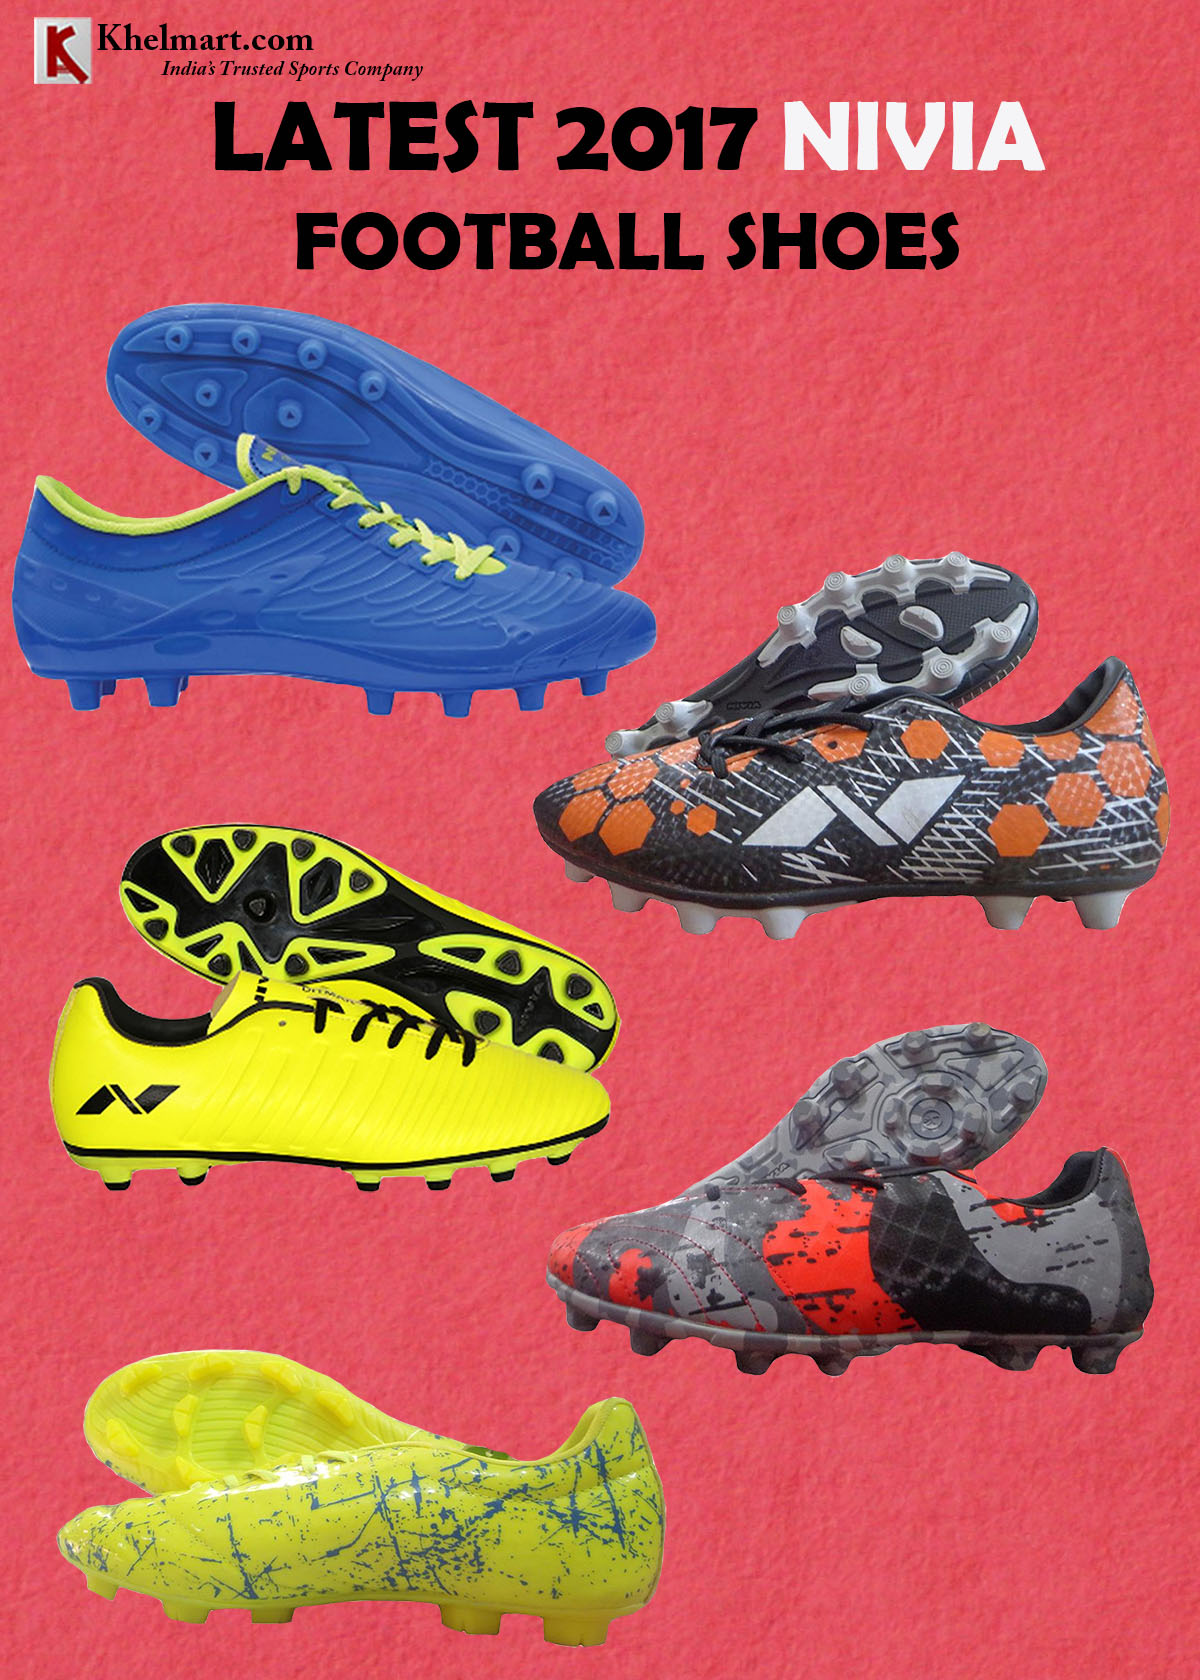 LATEST 2017 NIVIA FOOTBALL SHOES